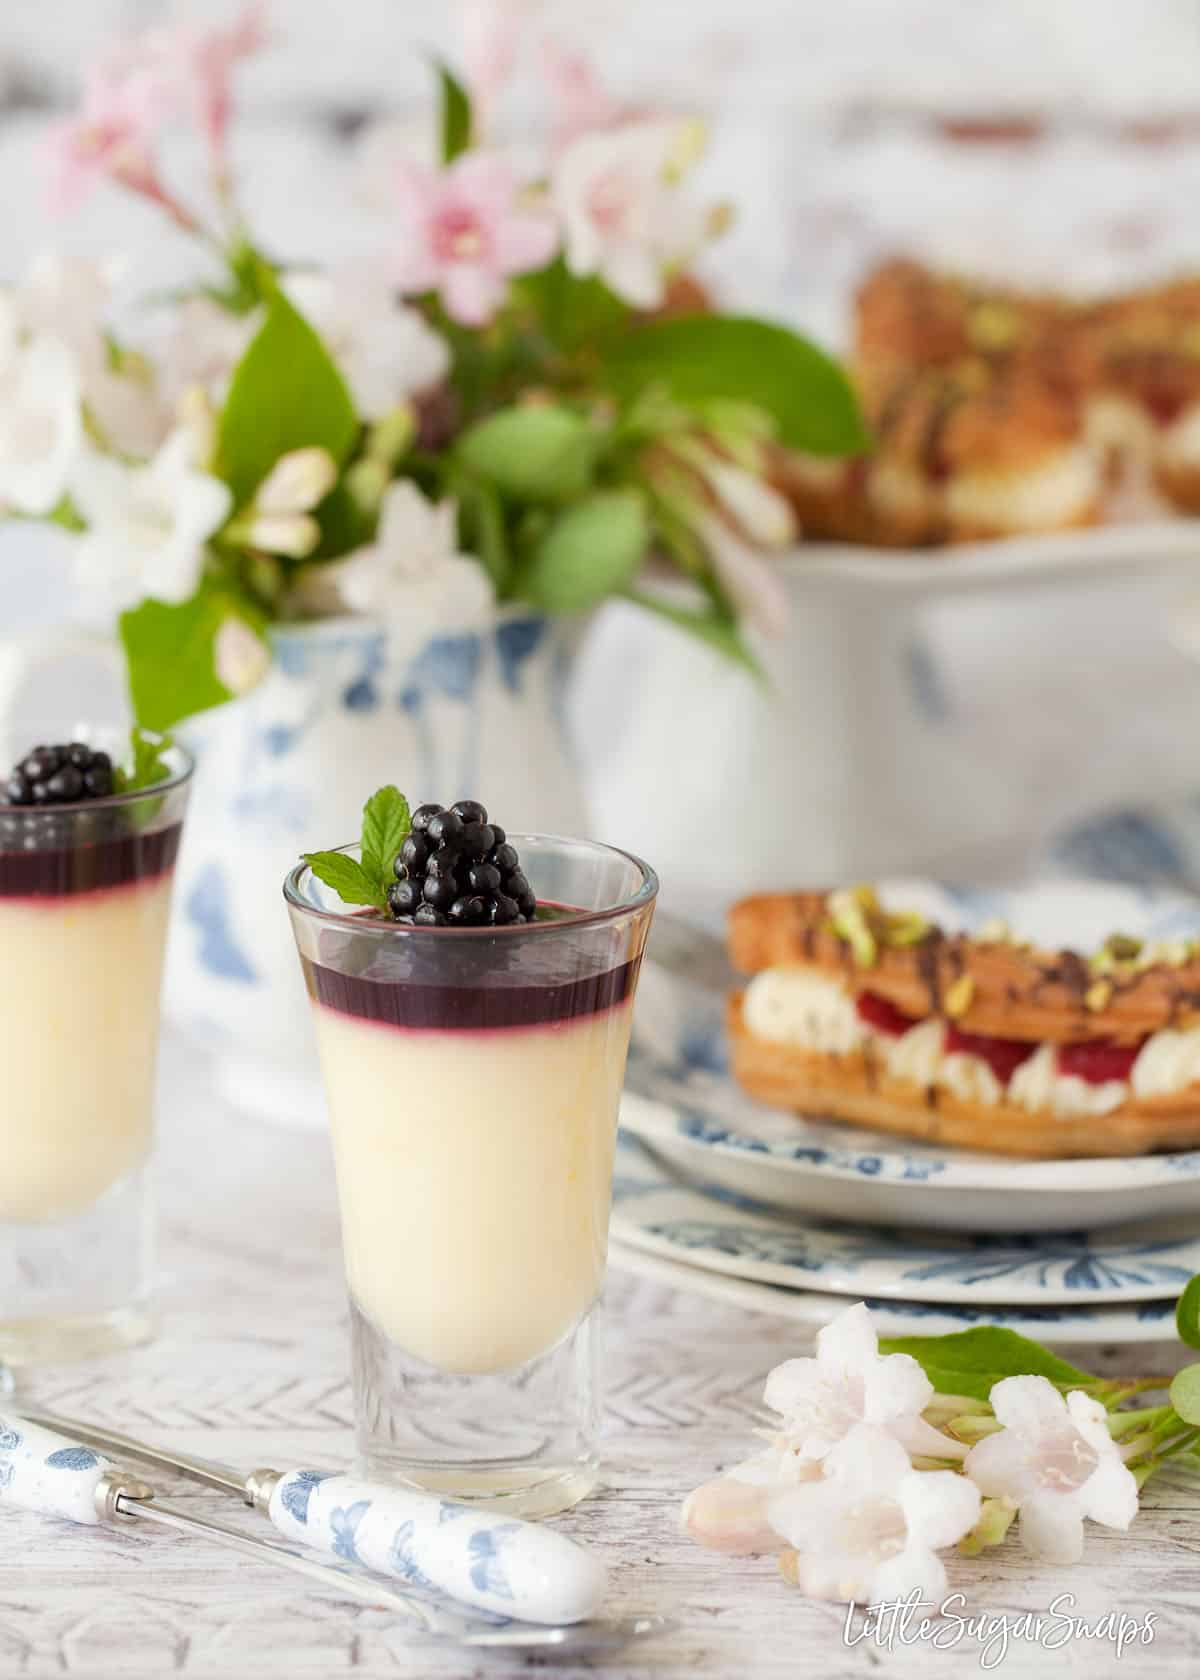 Several Afternoon Tea recipes including: Creamy lemon posset dessert topped with blackberry compote